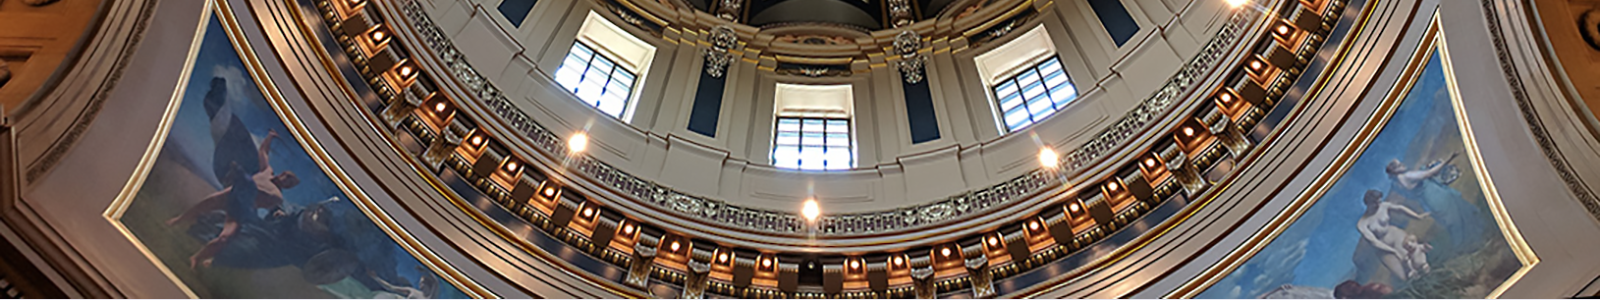 Inside-the-Capitol-by-Haley-Thannum2.png